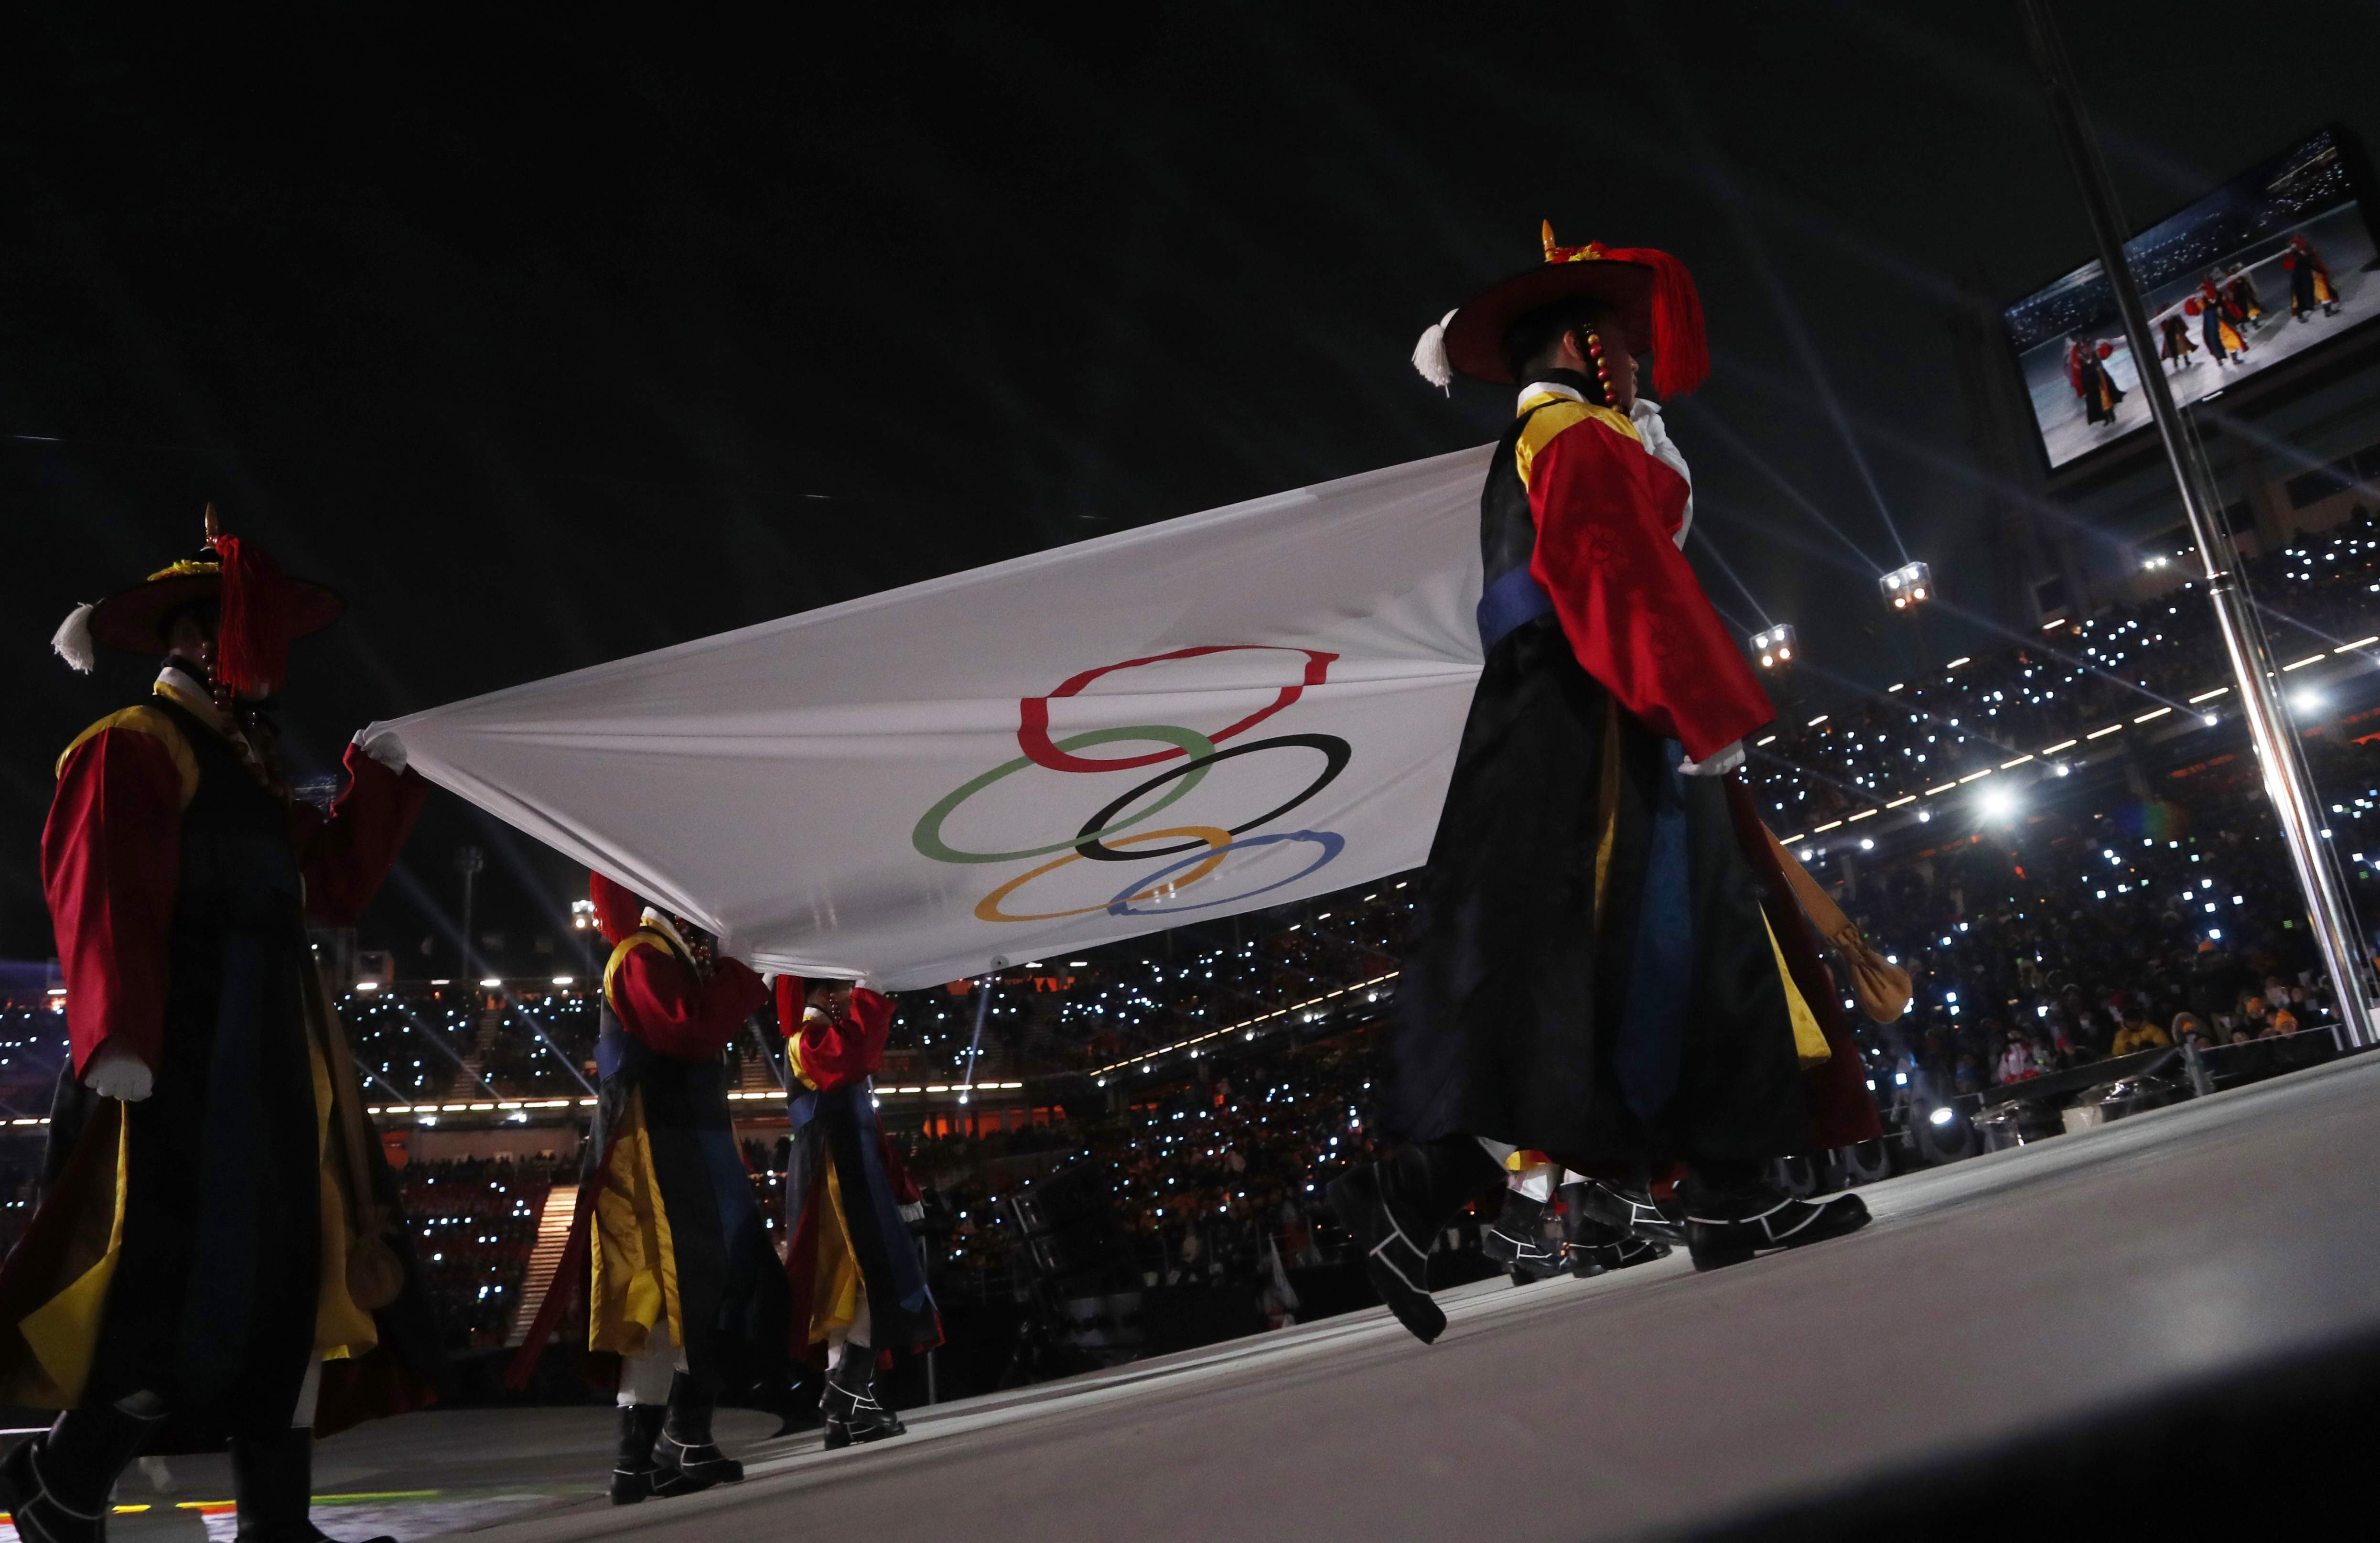 The Olympic flag is carried into the stadium during the opening ceremony of the 2018 Winter Olympics in Pyeongchang, South Korea, Friday, Feb. 9, 2018. (AP Photo/Petr David Josek)